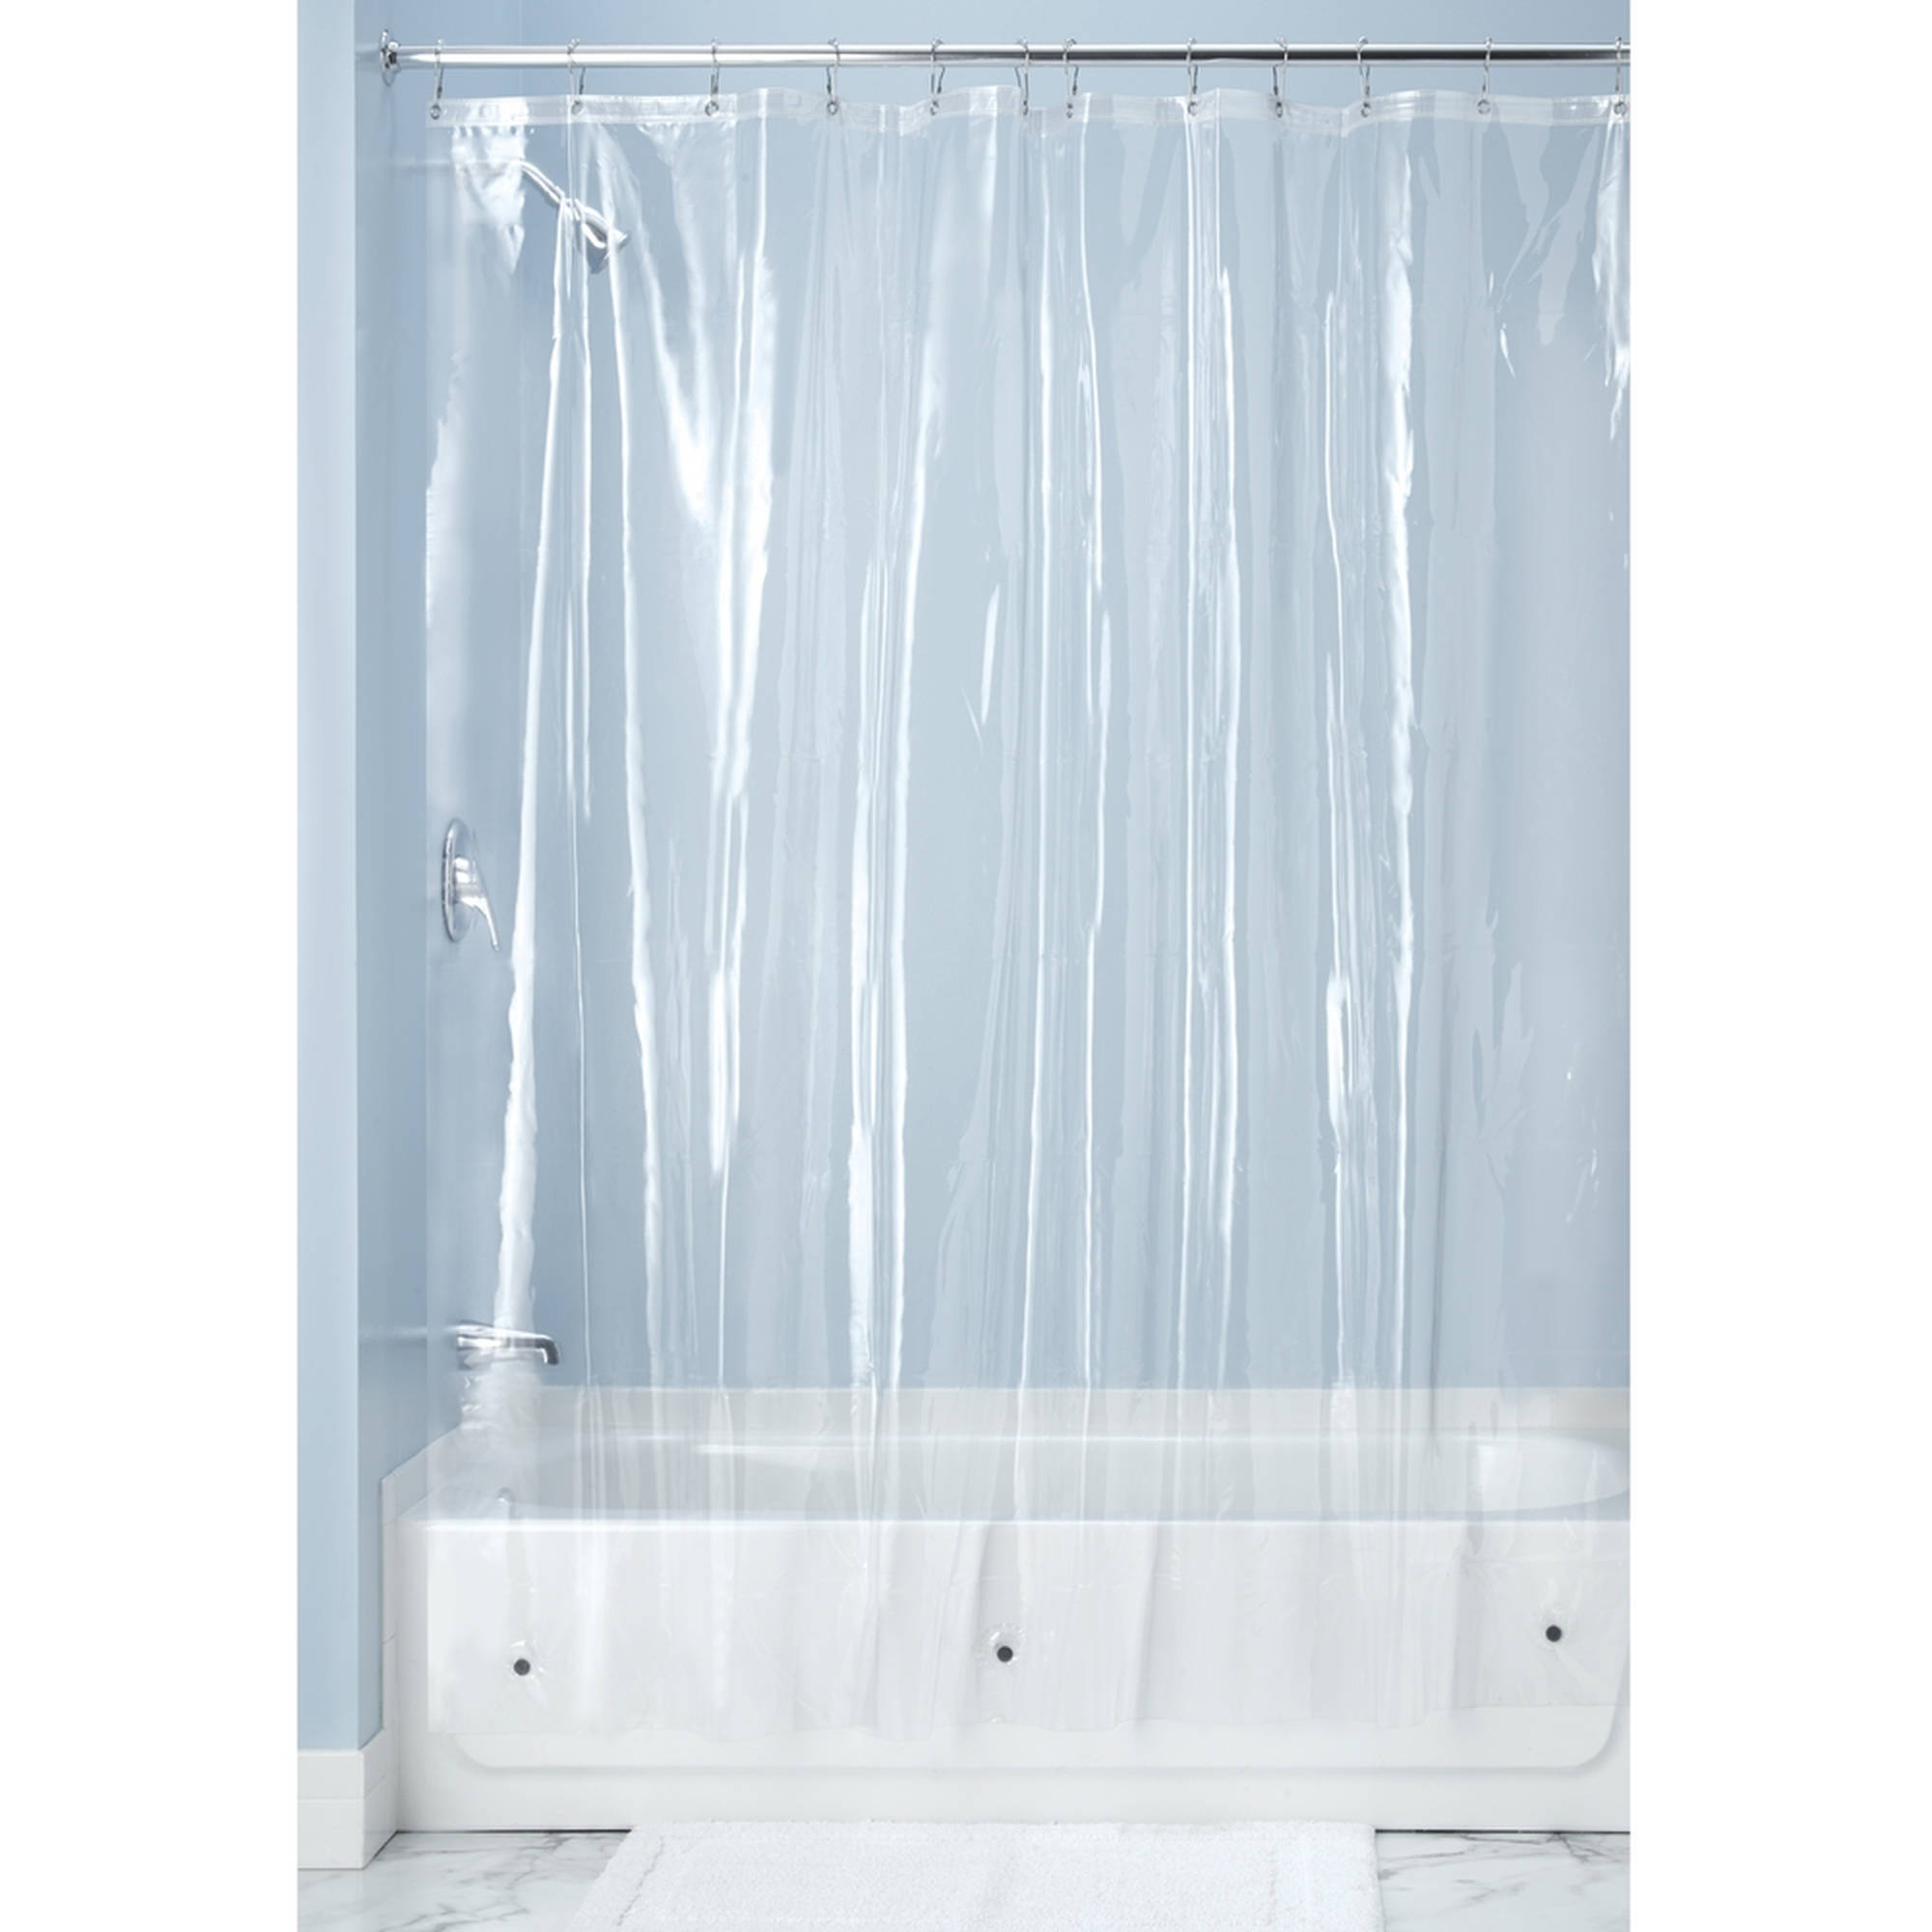 Clear Vinyl Shower Curtain With Fish • Shower Curtains Ideas